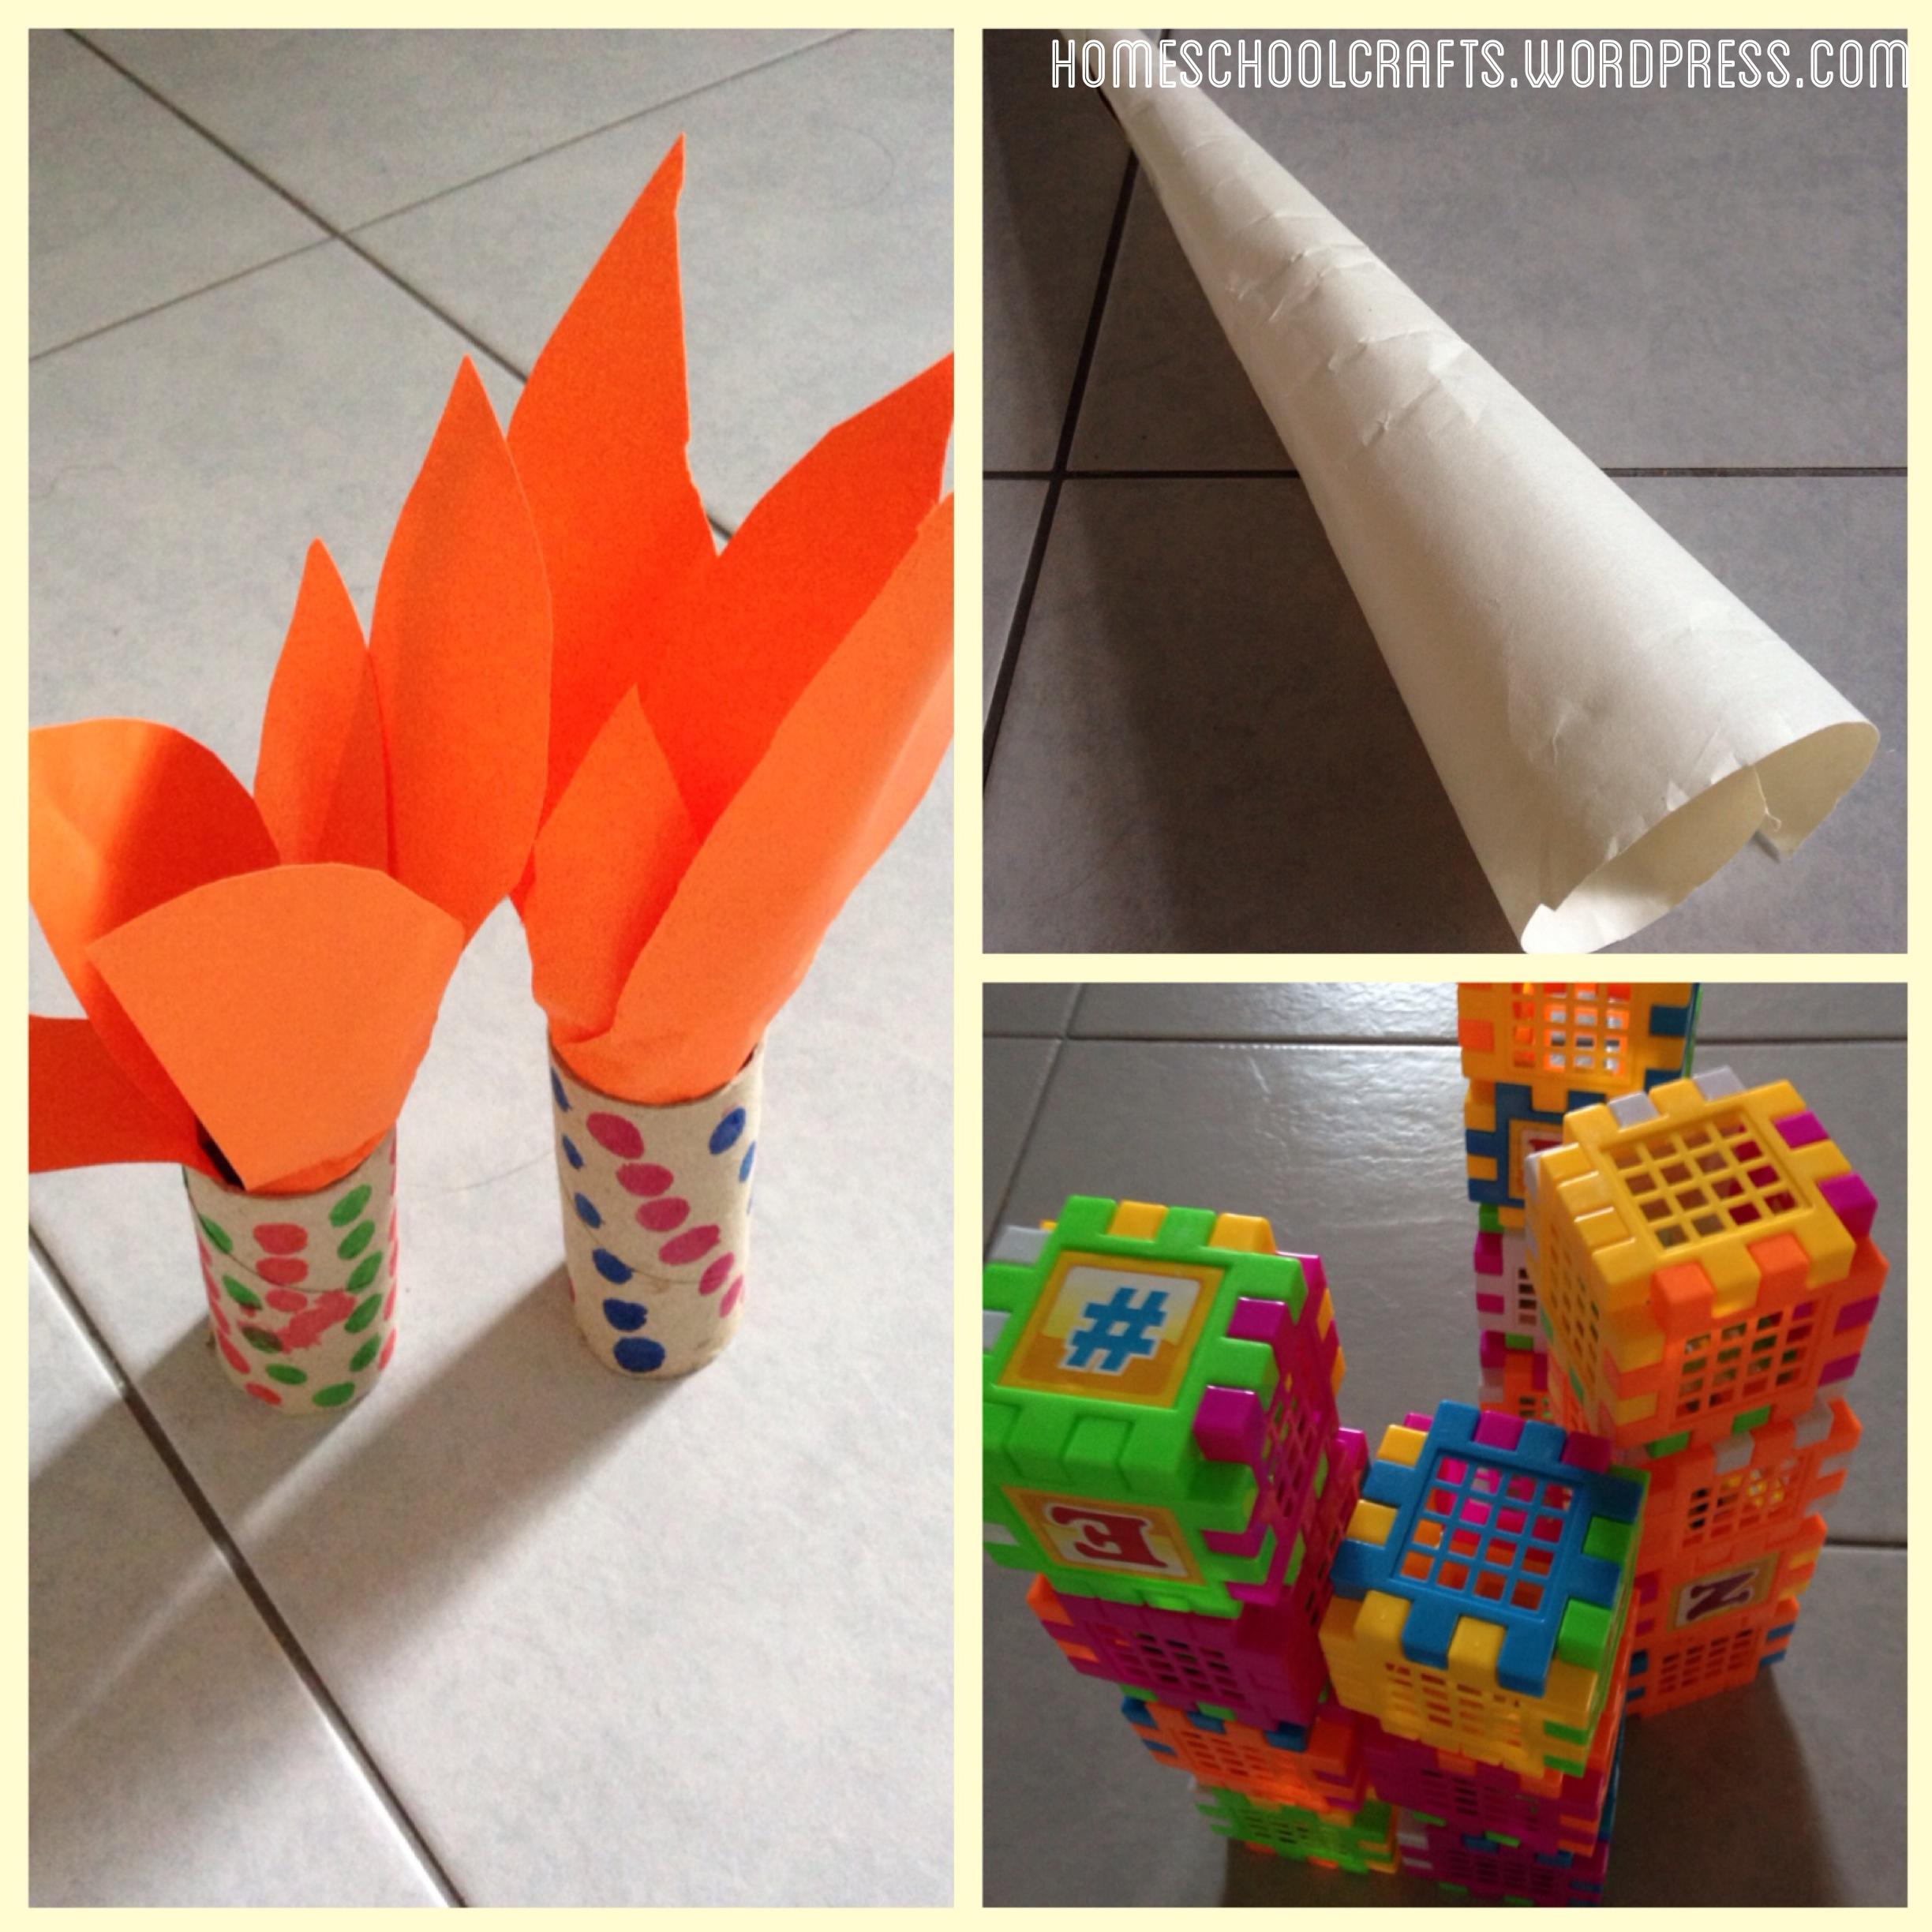 pretend play u2013 homeschool crafts